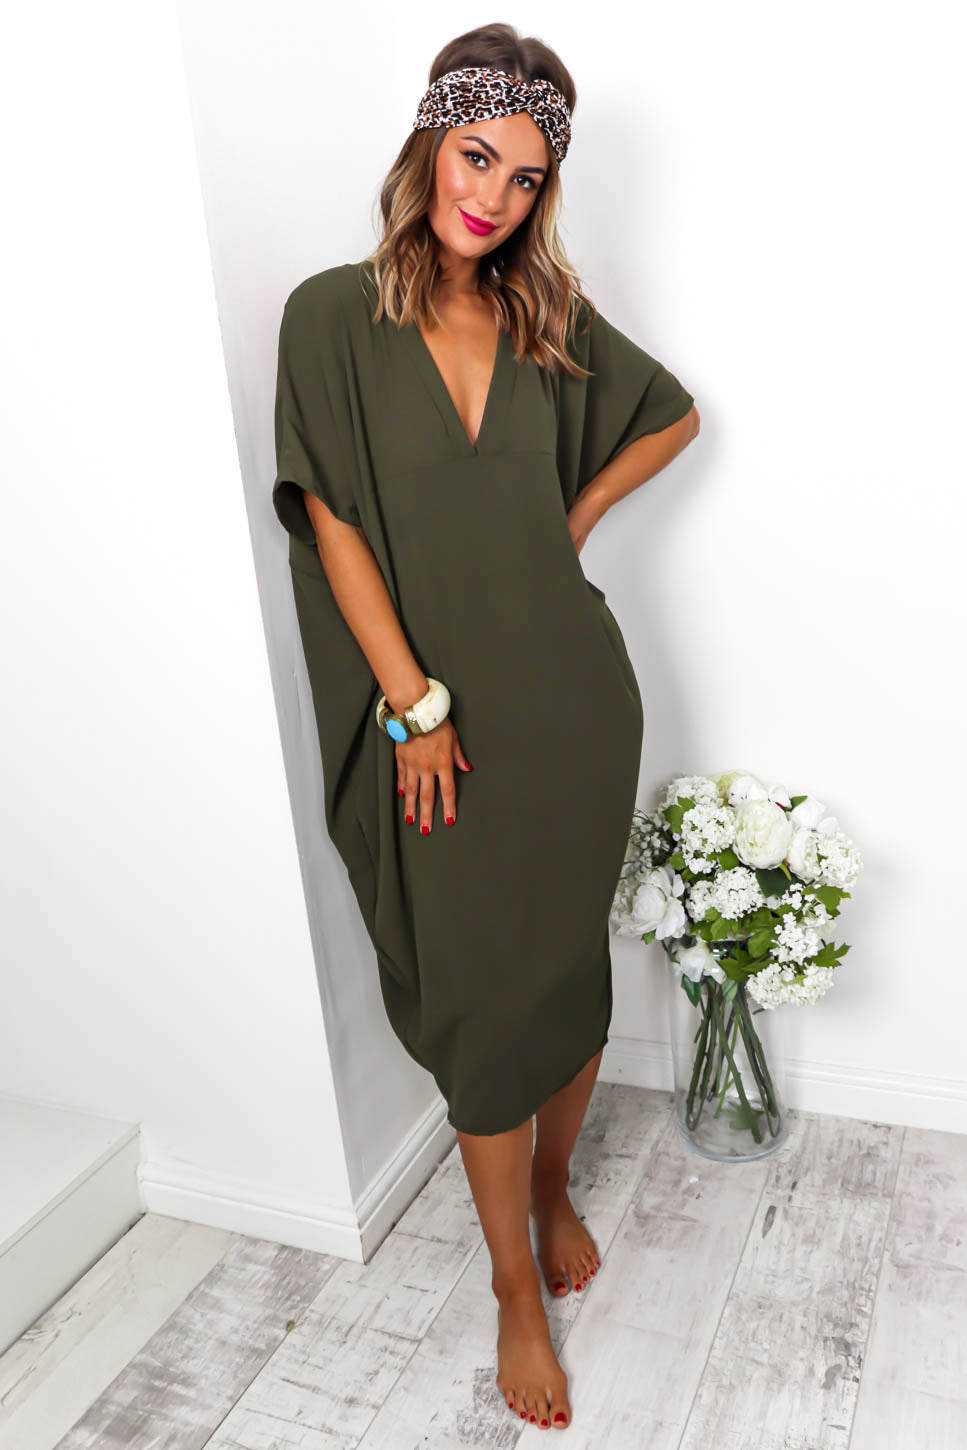 Beach To Their Own - Midi Dress In KHAKI